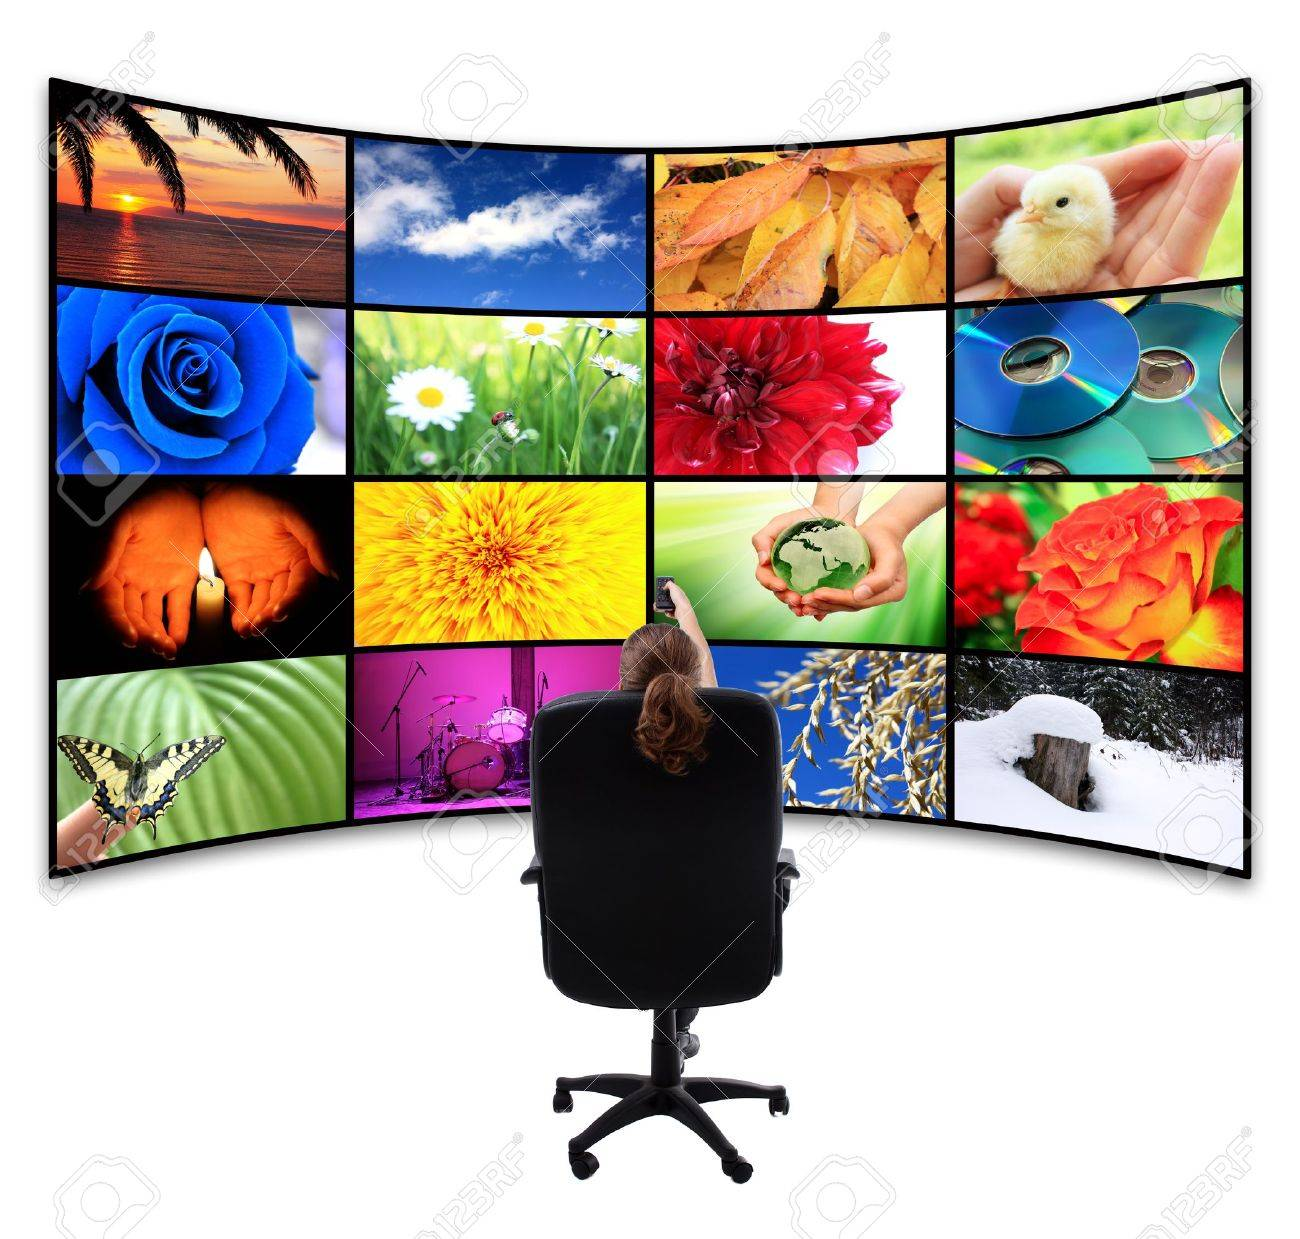 Tv-Panel with remote control Stock Photo - 9161082